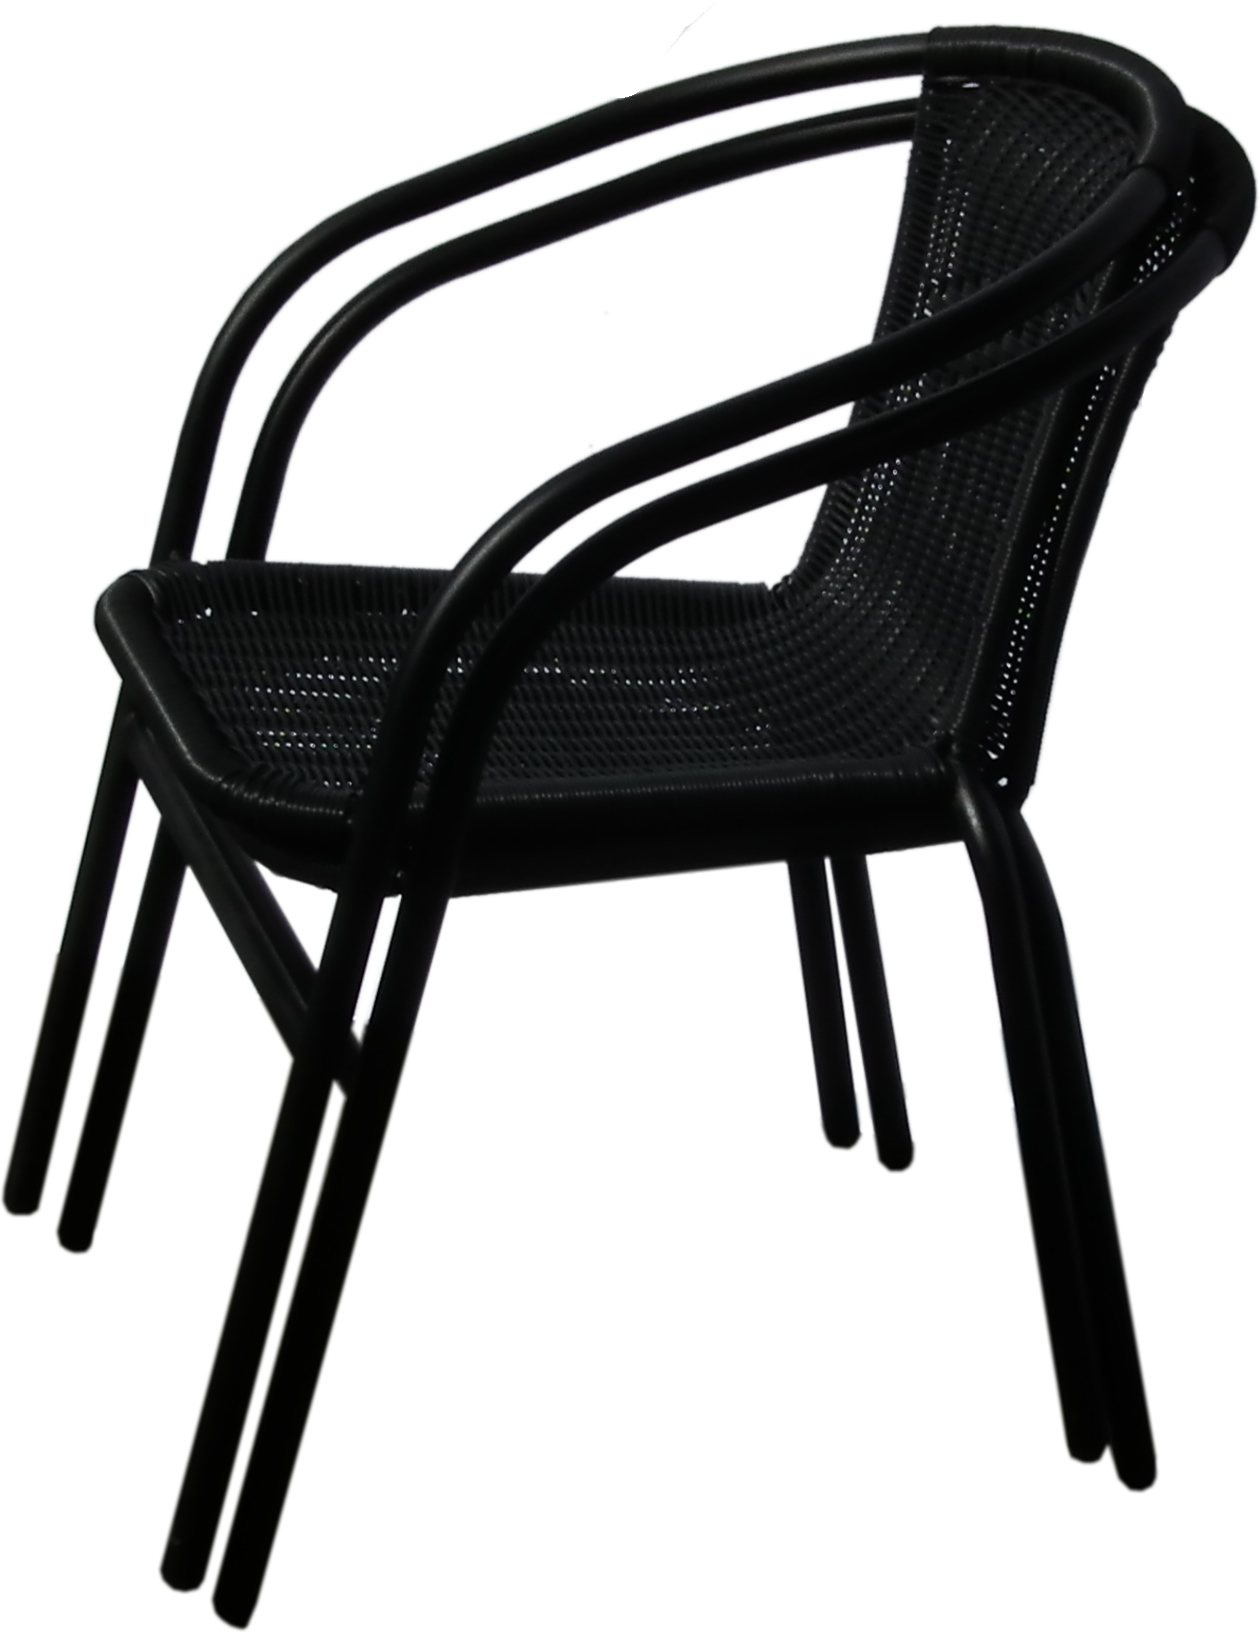 Black Patio Chairs Black Outdoor Wicker Rattan Bistro Chair Metal Frame Woven